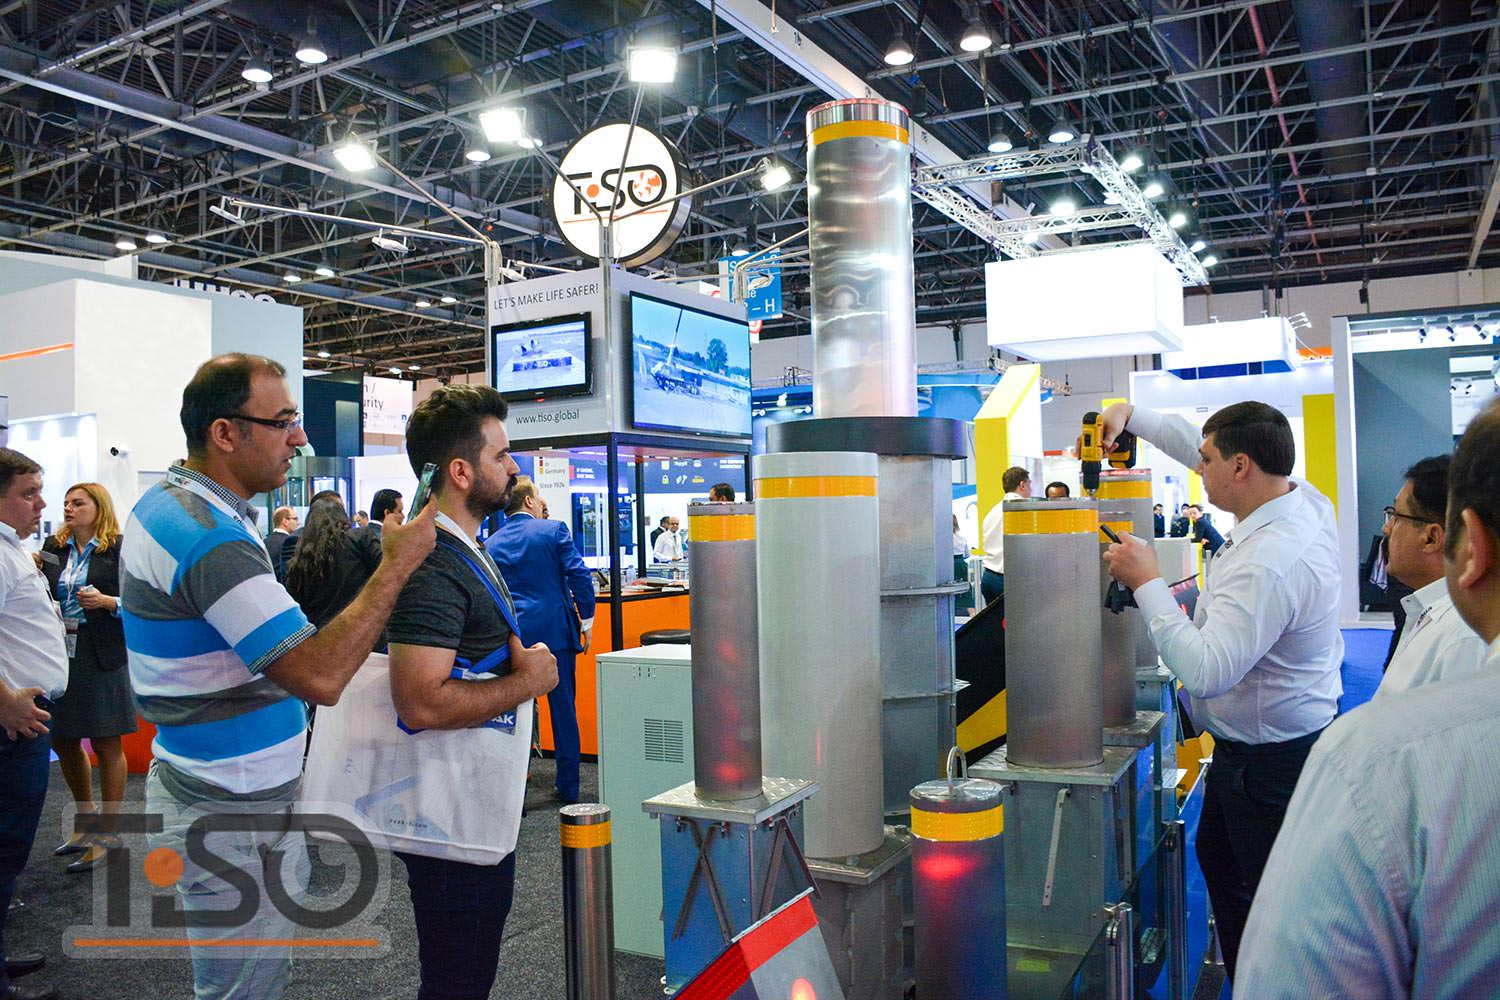 الشمعات ، Intersec-2018